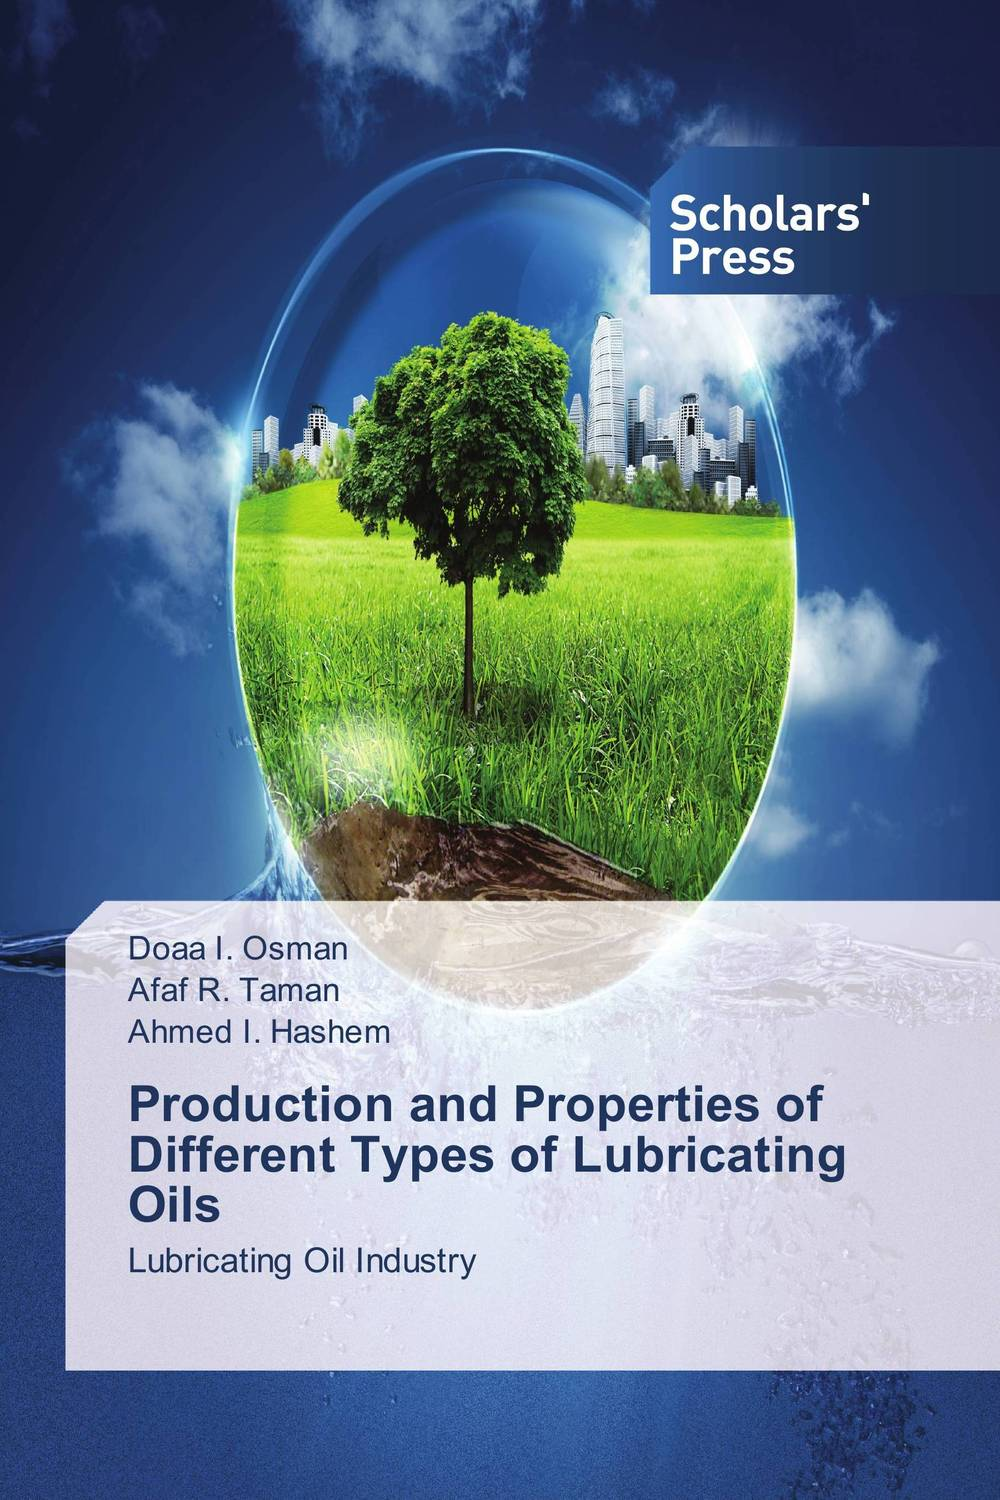 Production and Properties of Different Types of Lubricating Oils